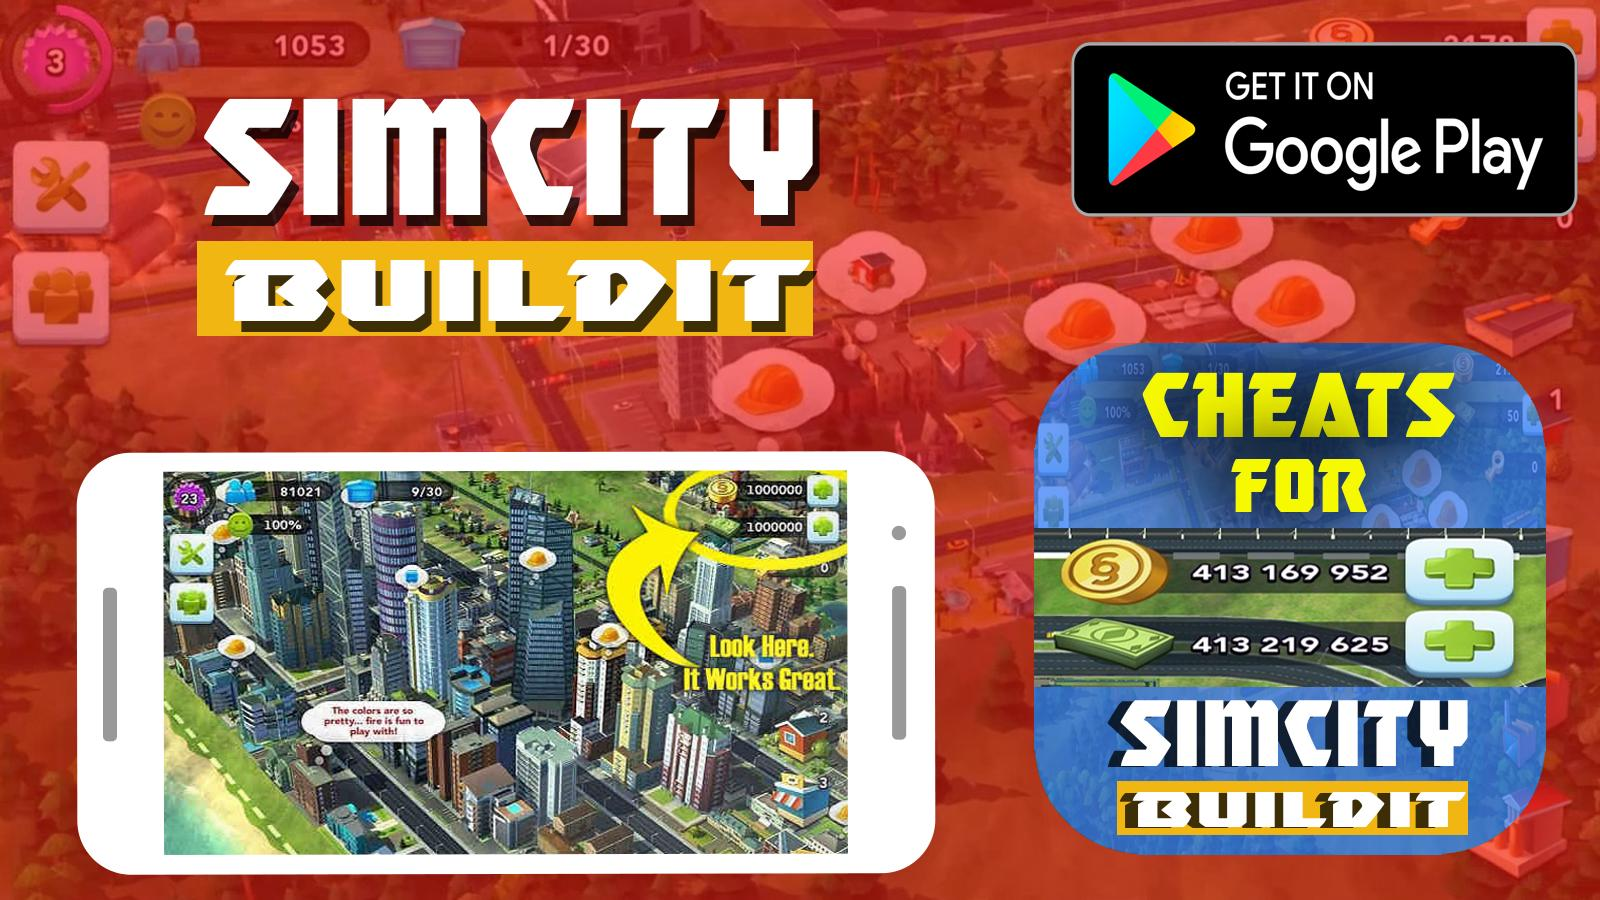 Cheats For Simcity Buildit Prank! for Android - APK Download